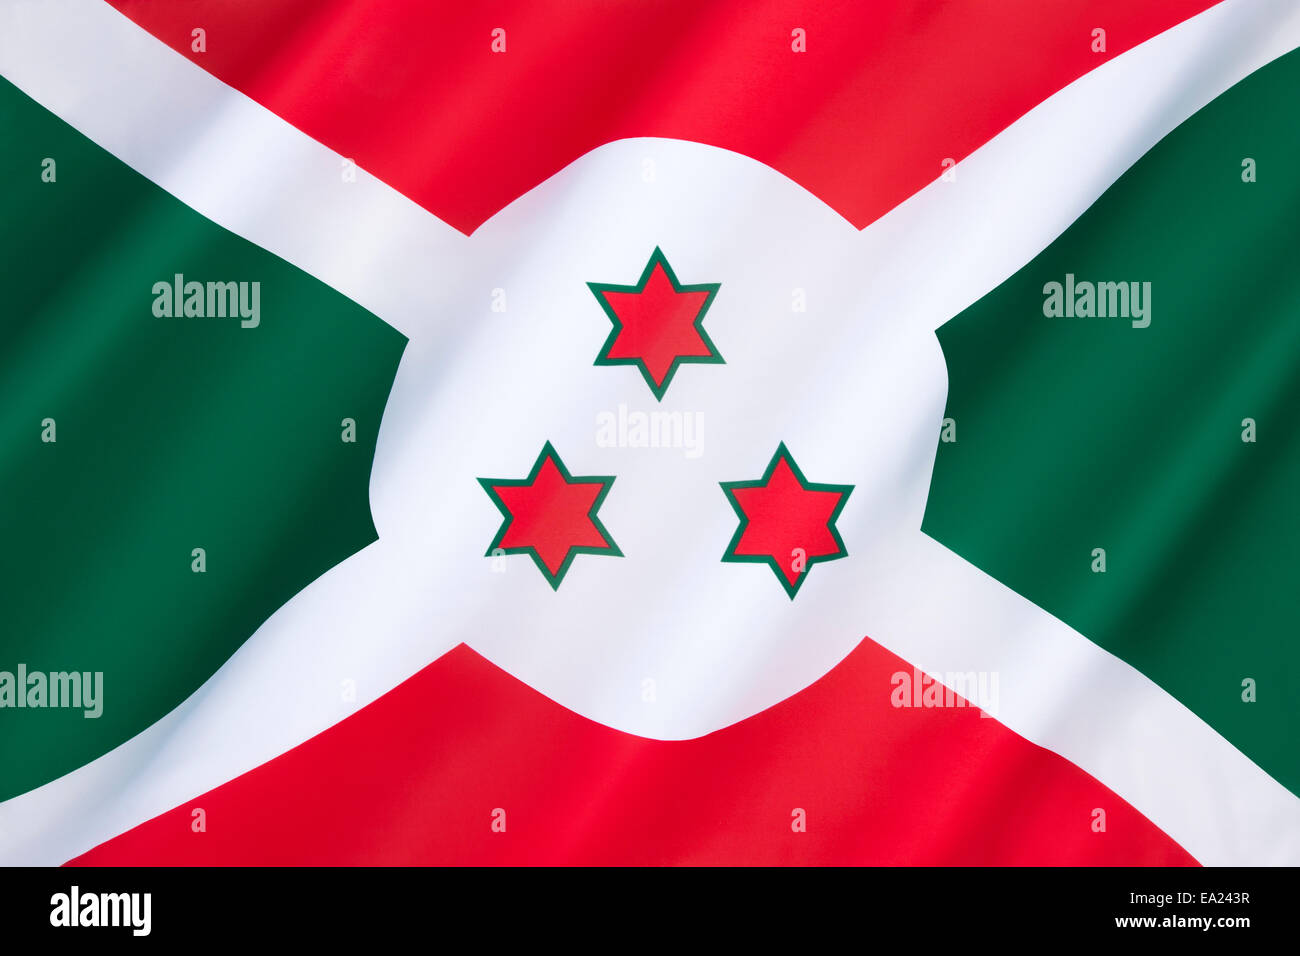 Flag of Burundi  - adopted on 28th June 1967 following independence from Belgium on 1st July 1962. Burundi is in - Stock Image